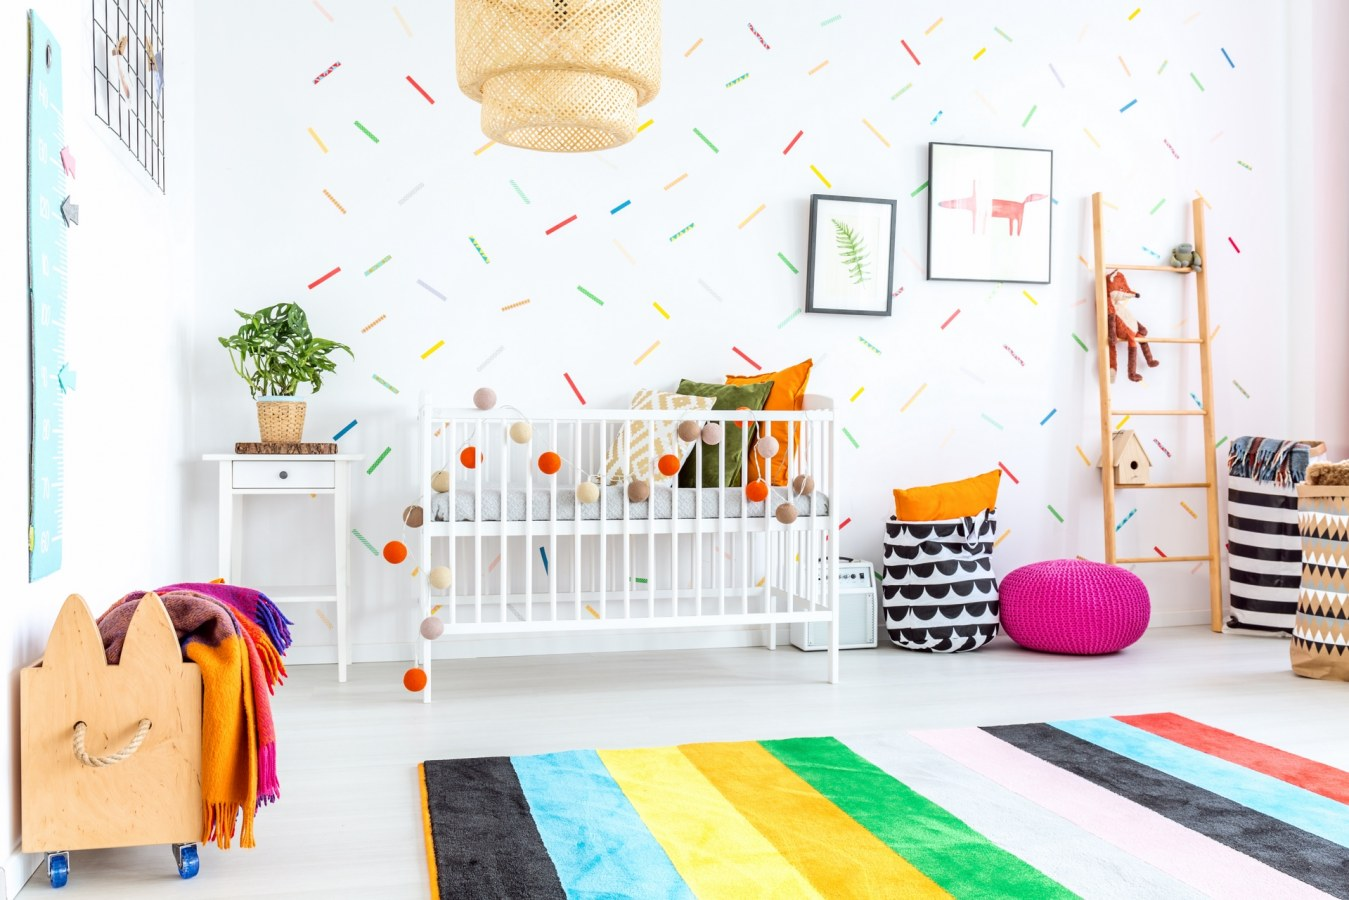 babyproof your house